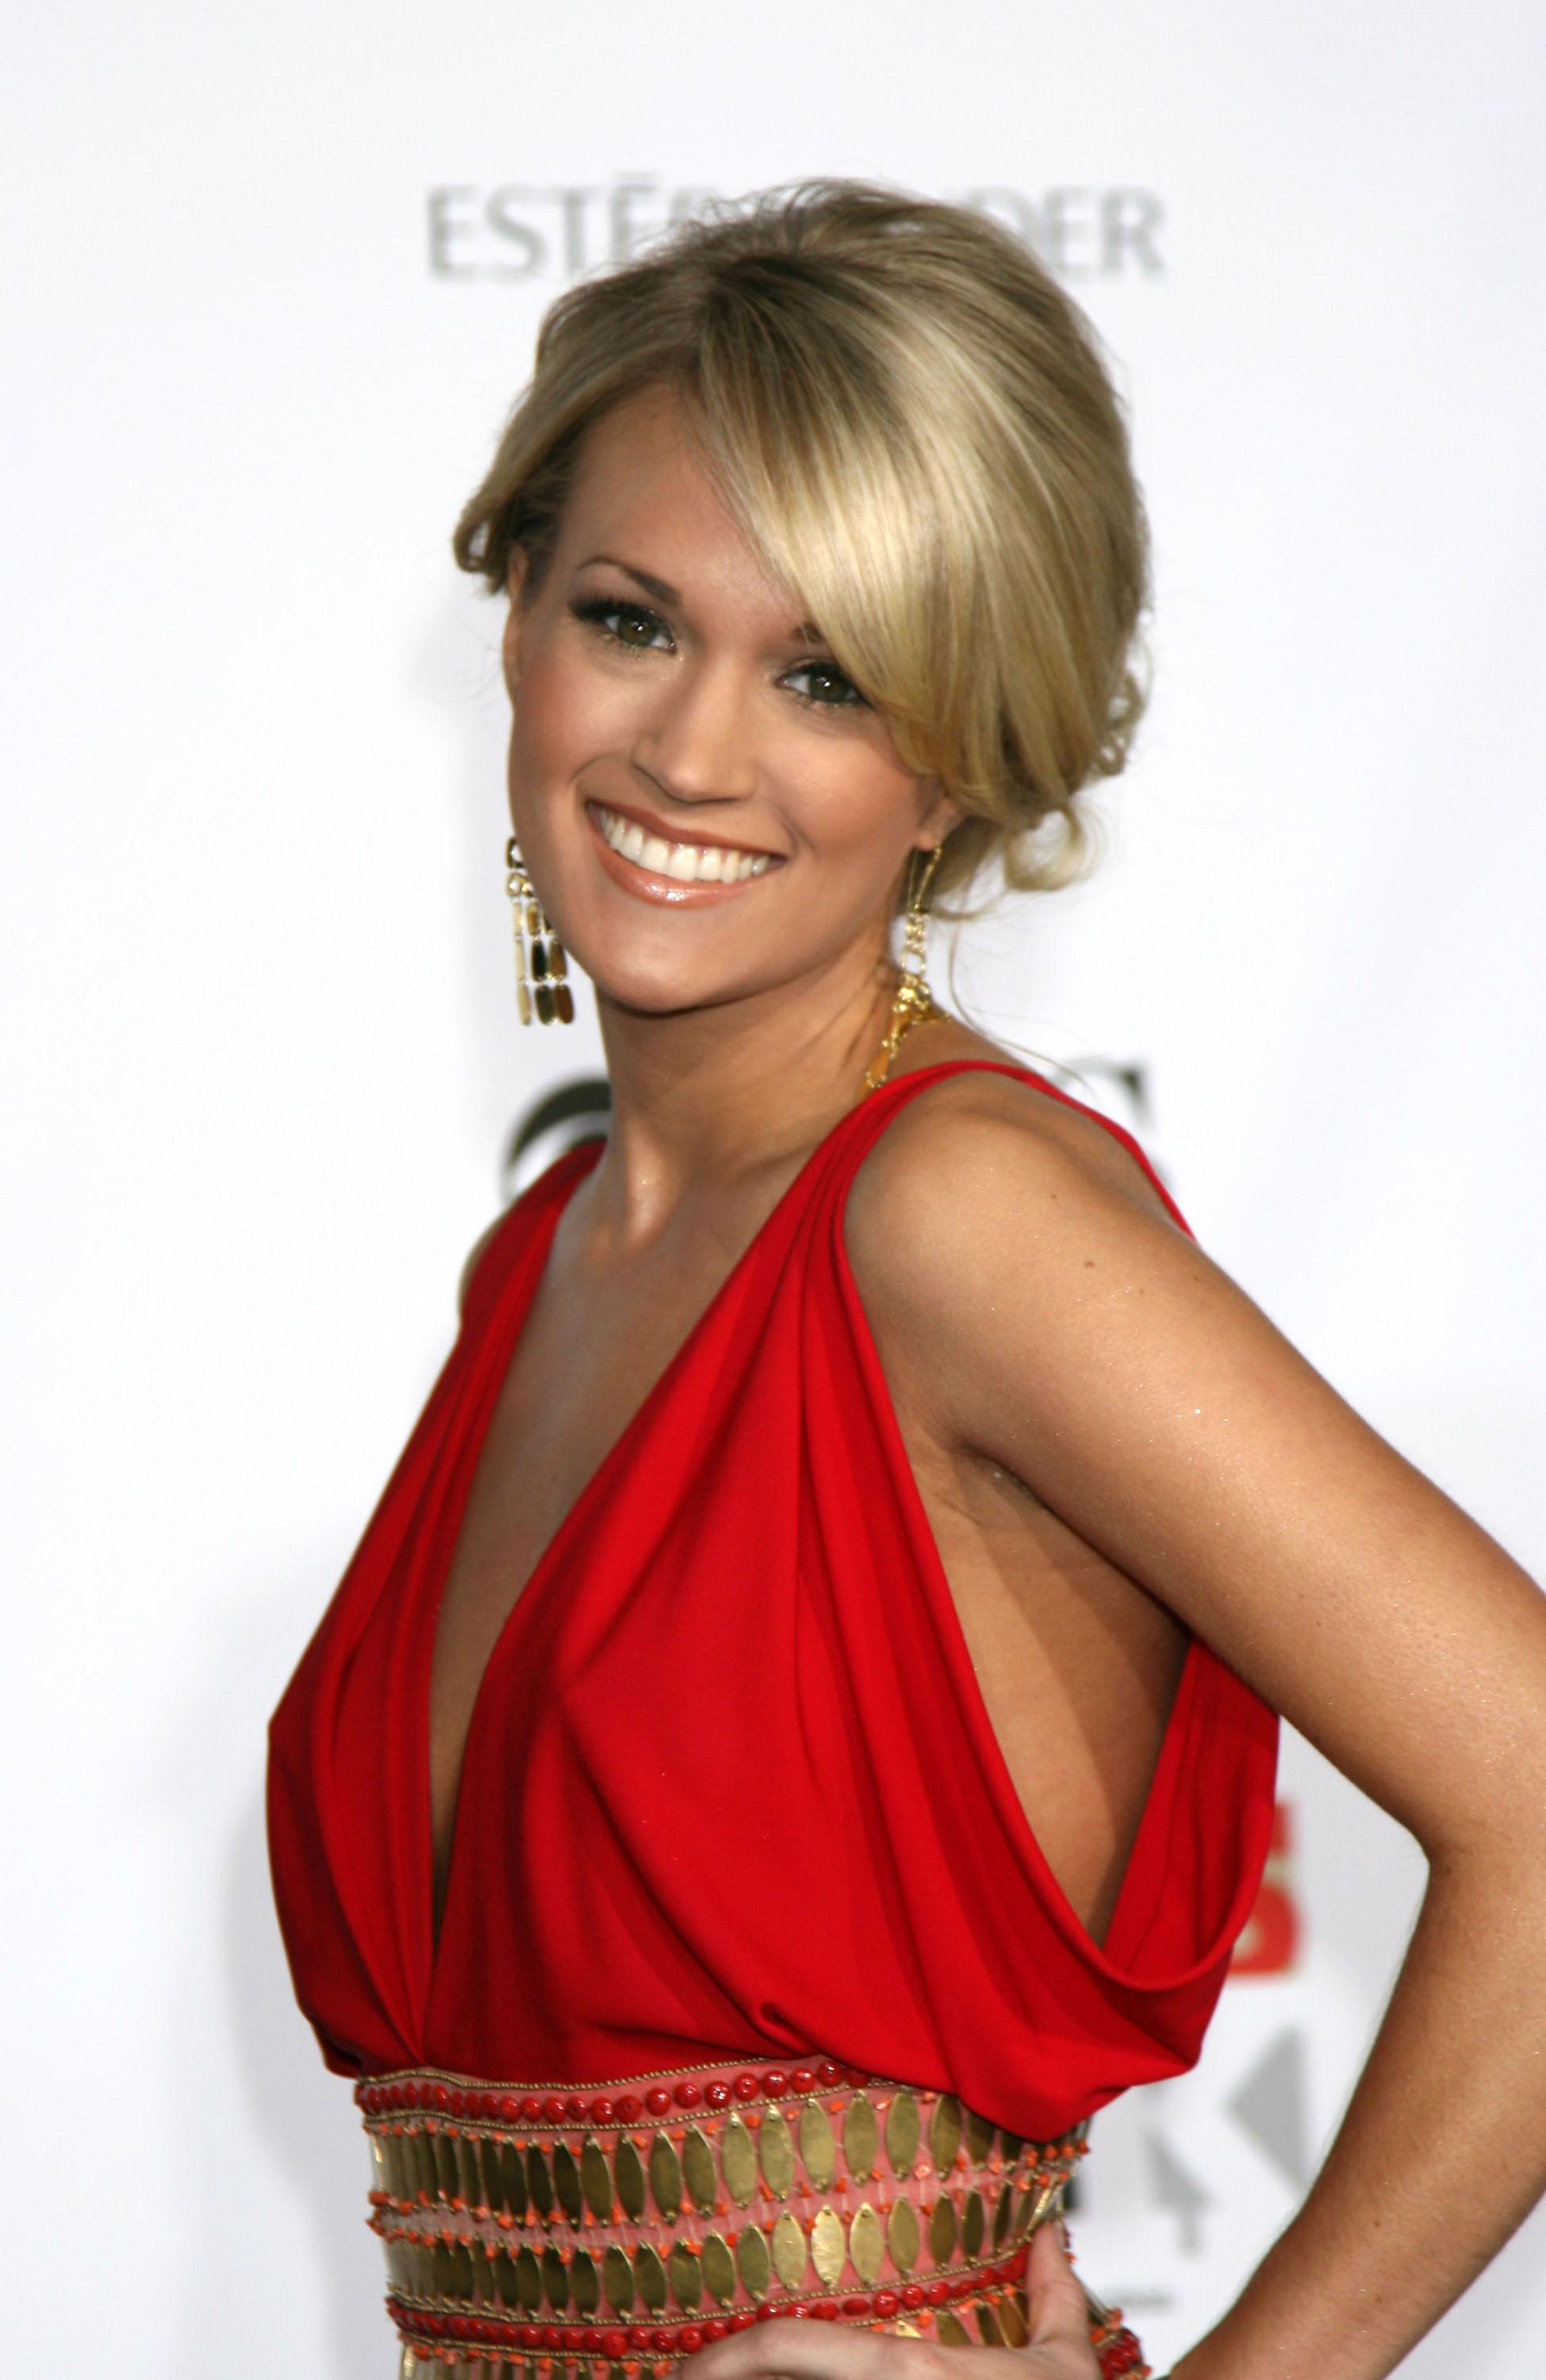 "Carrie Underwood ""Movies Rock"" 2007 - arrivals at the Kodak Theater Los Angeles, California - 02.12.07 Credit: (Mandatory): Nikki Nelson / WENN"